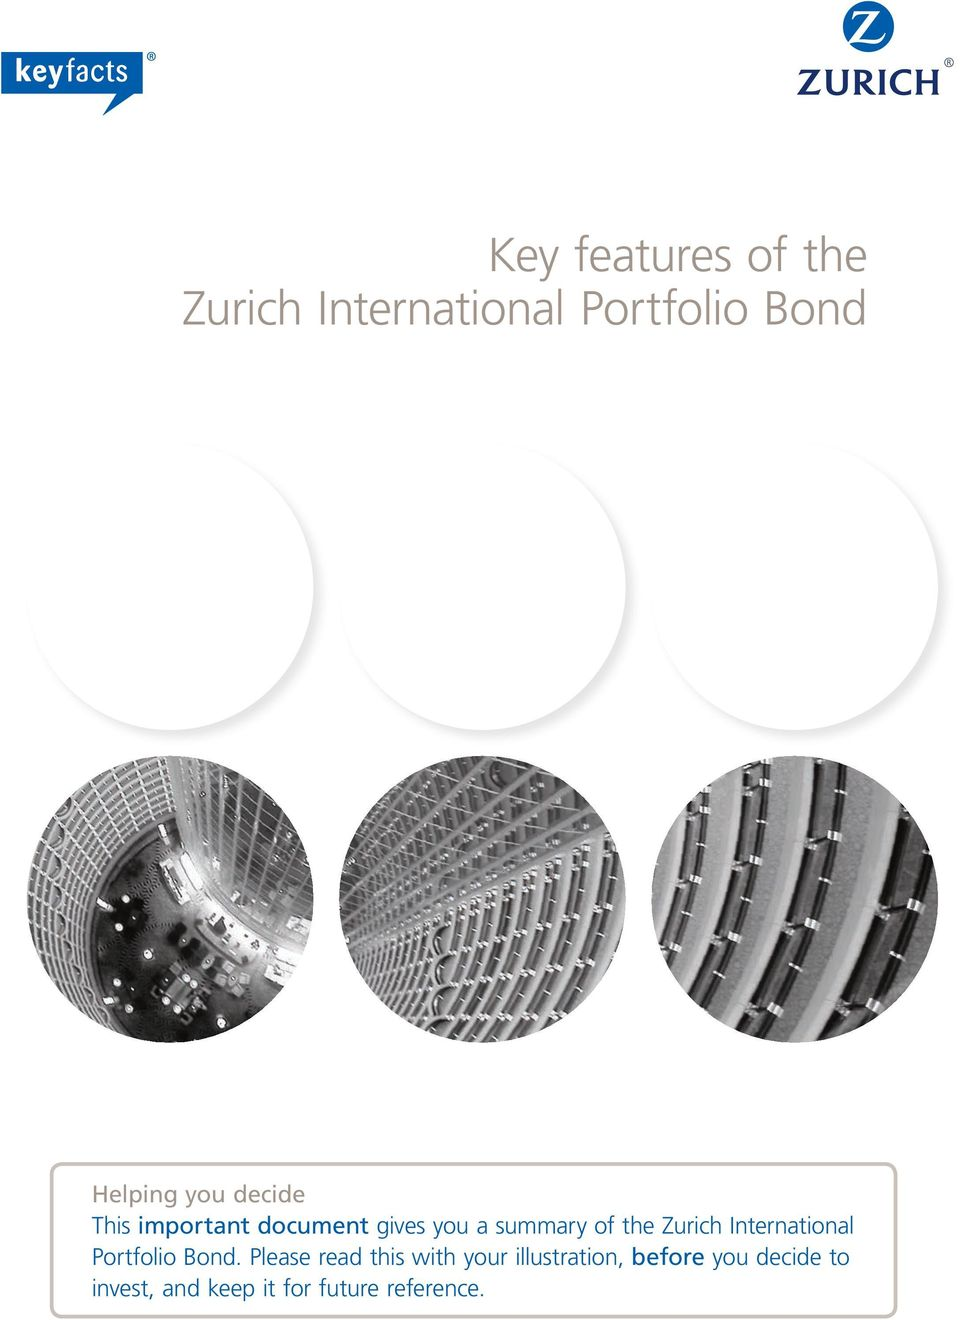 Zurich International Portfolio Bond.